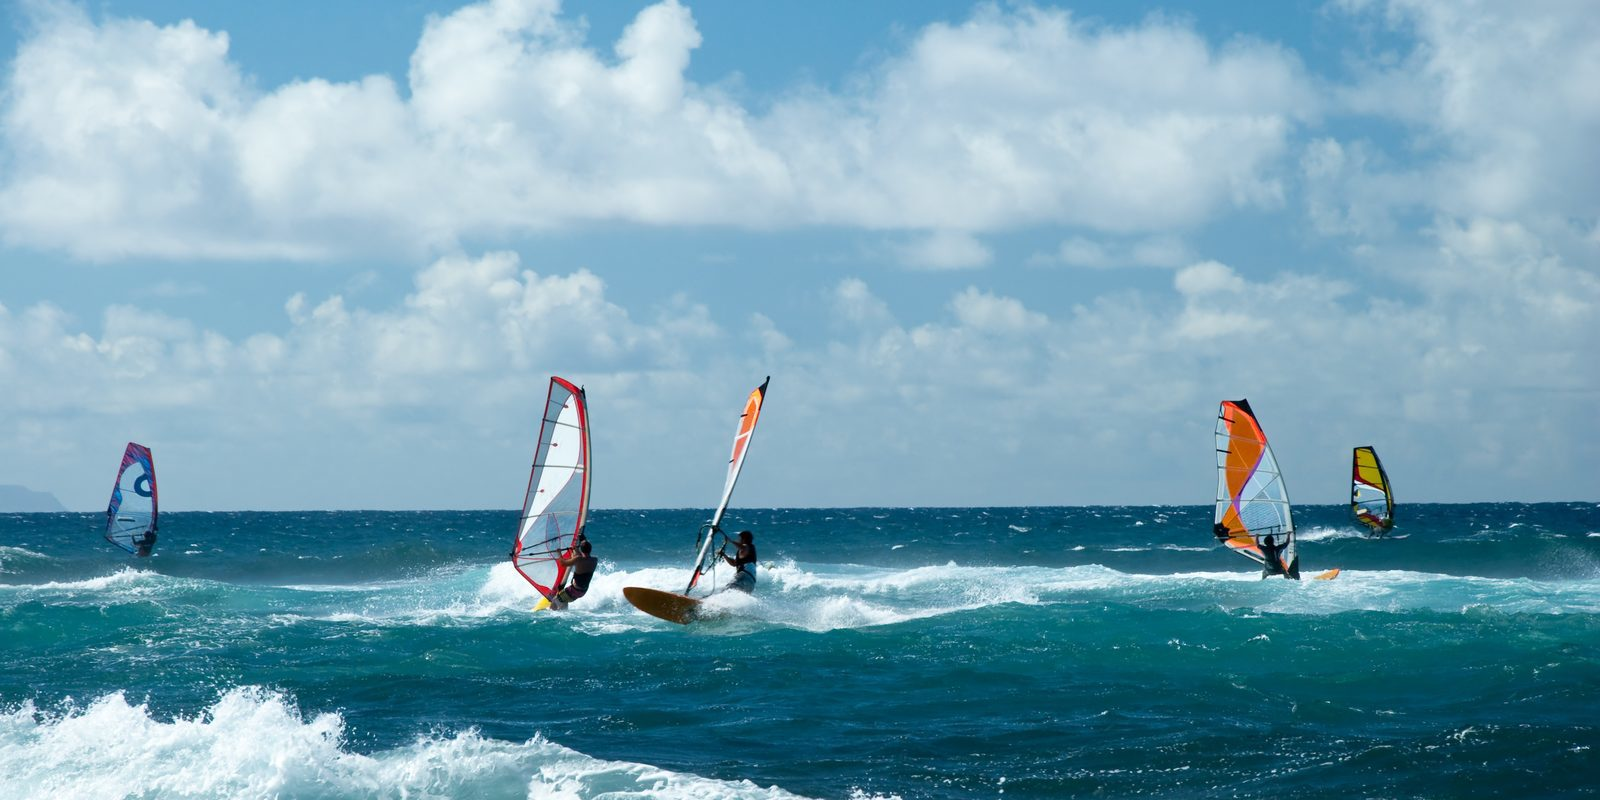 Jibe City Windsurfing Centre